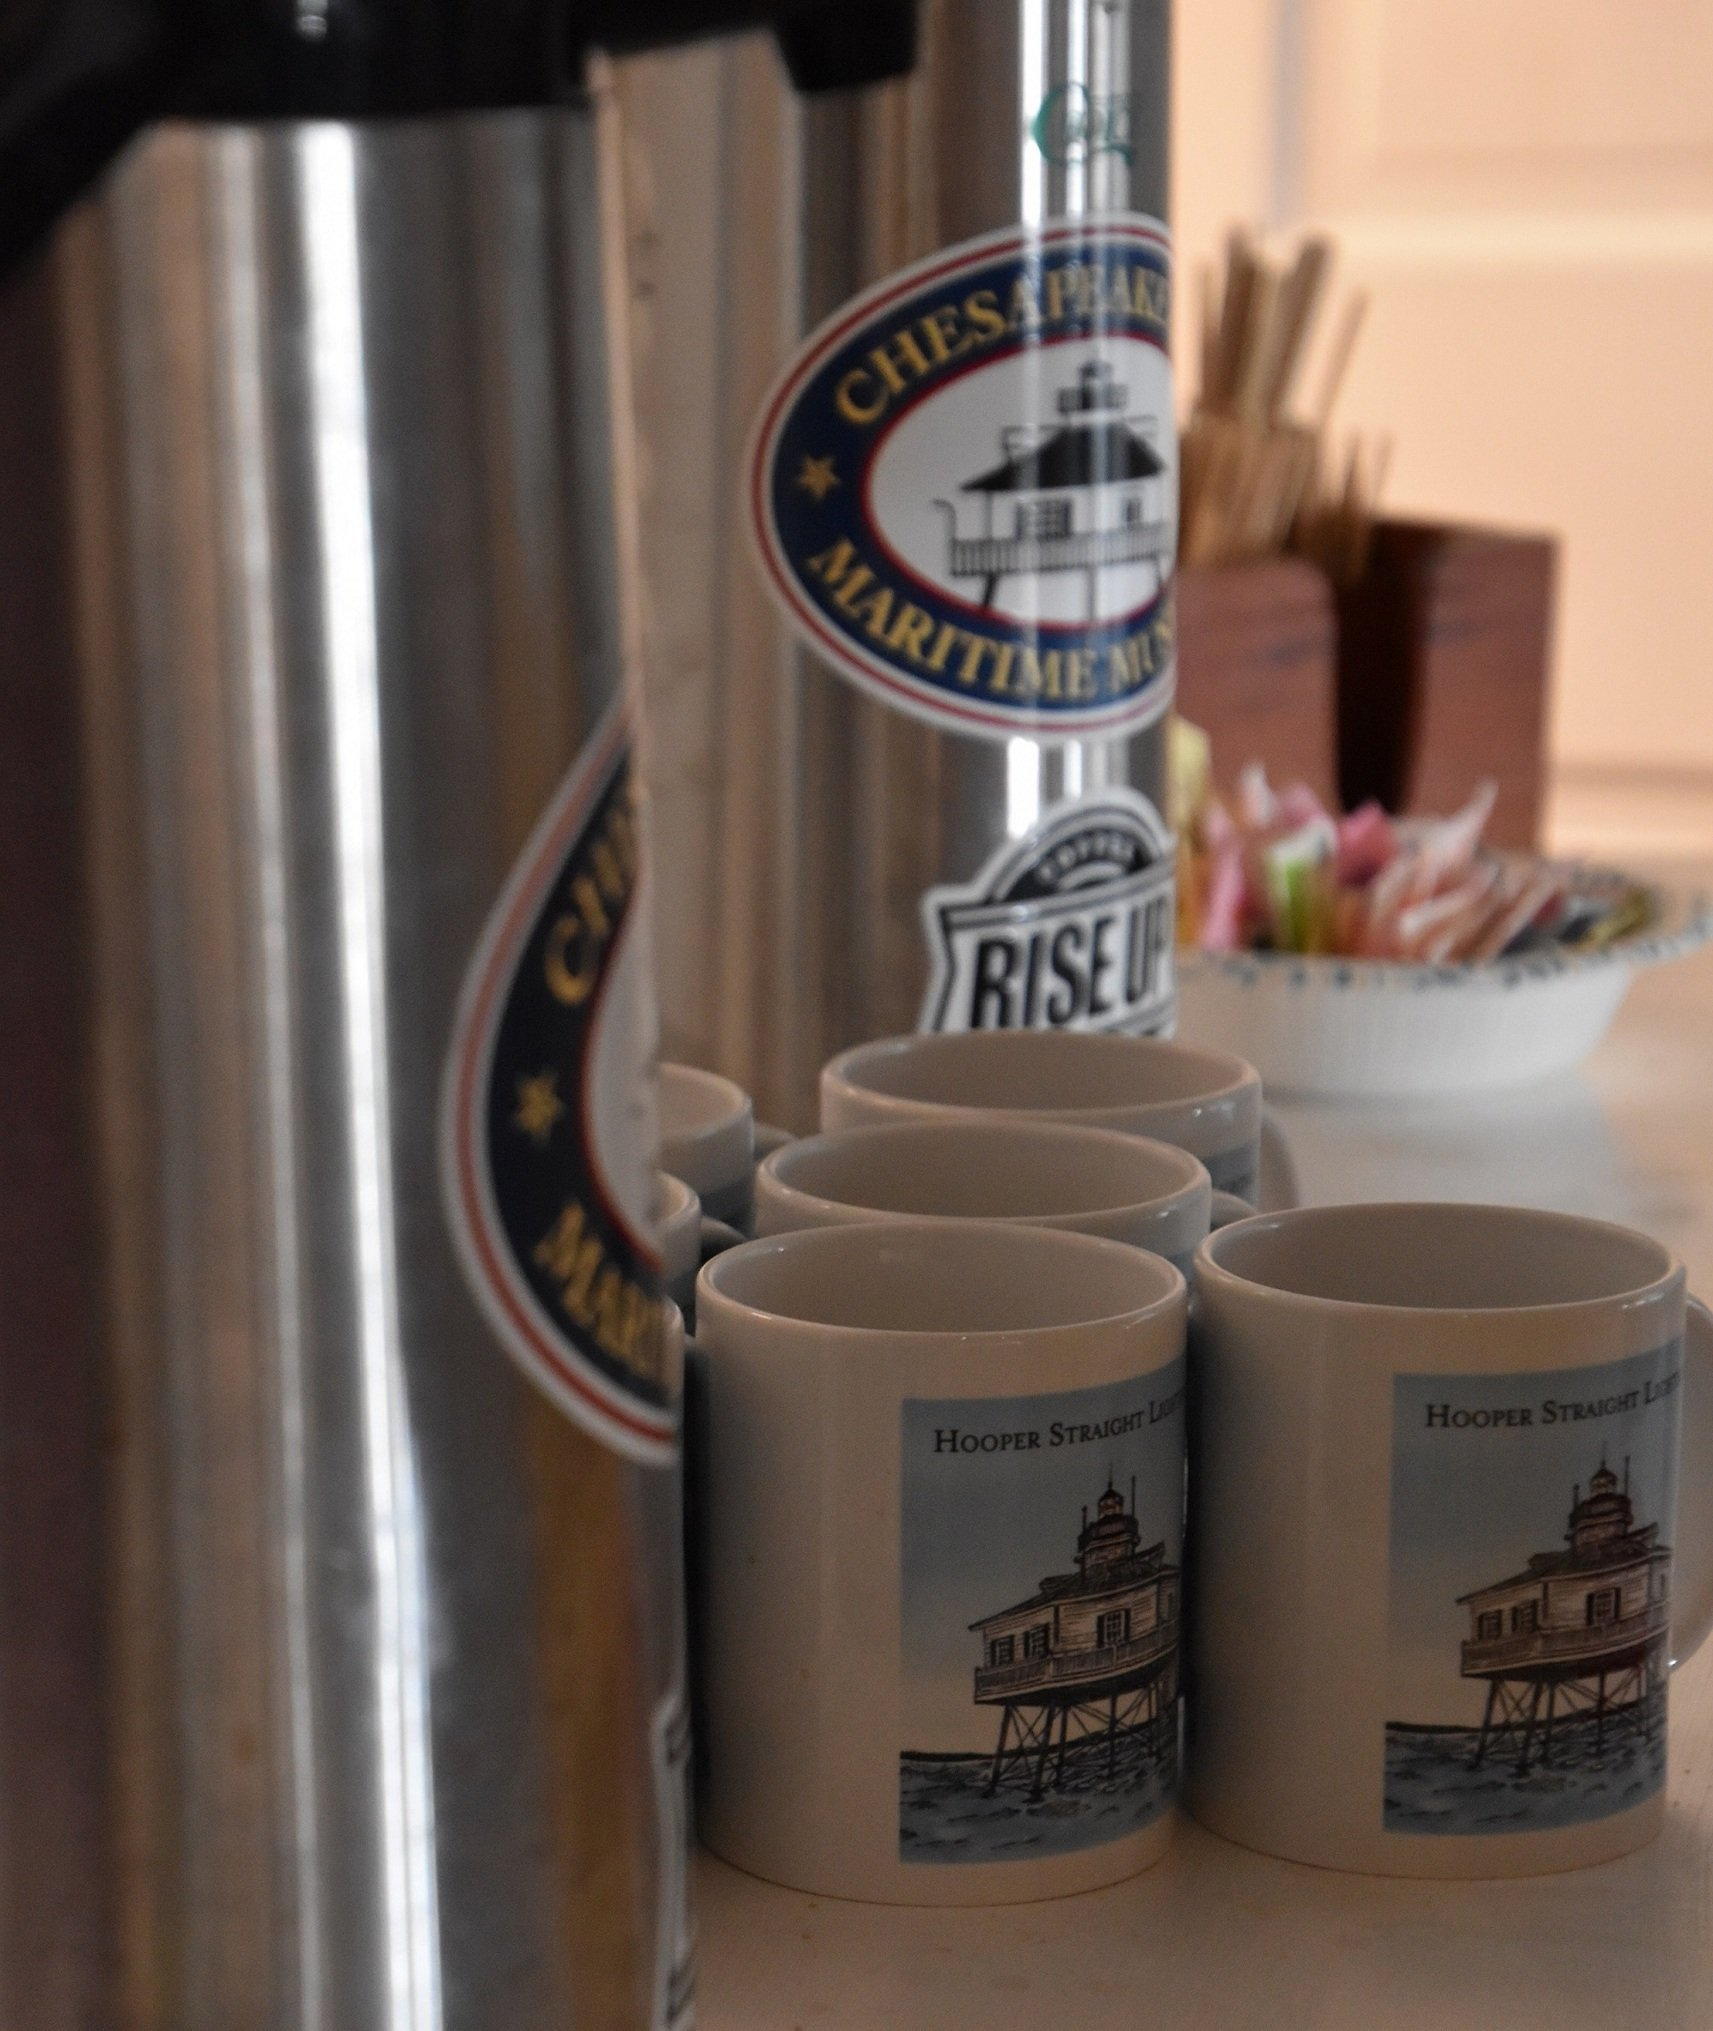 , Chesapeake Bay Maritime Museum and Mystic Seaport Museum Launch Single-Use Plastic Free Initiative, The Circular Economy